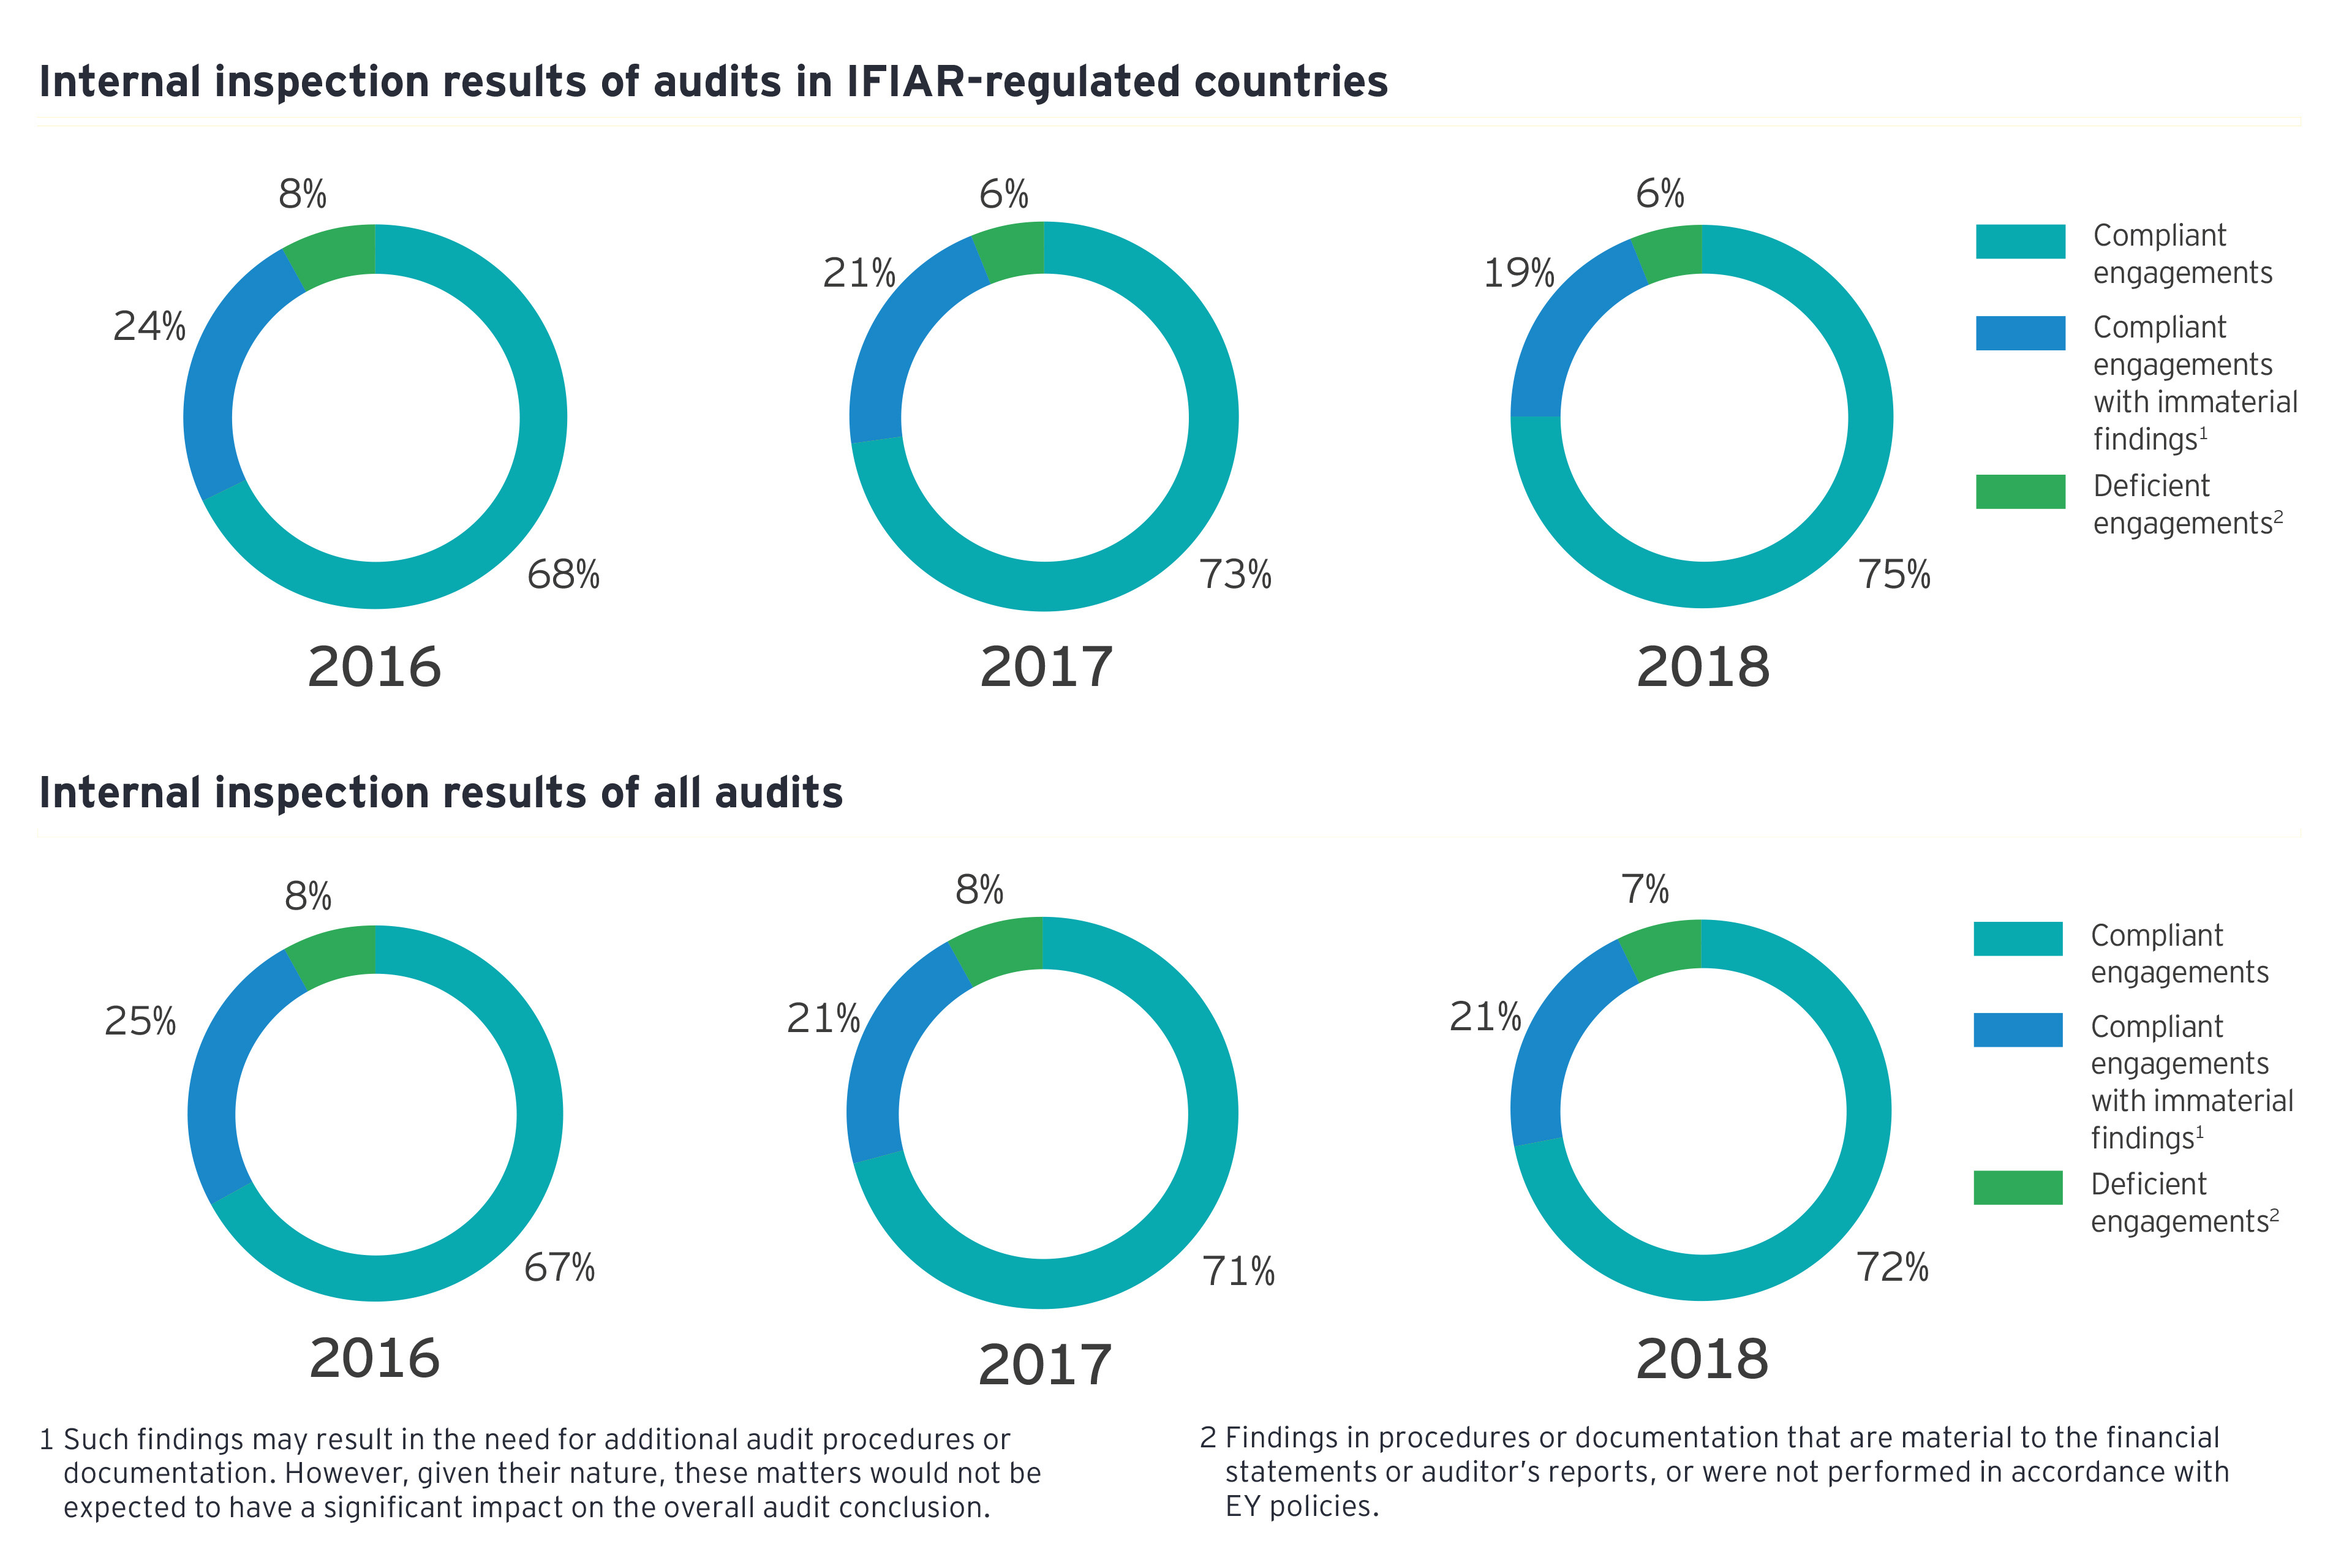 Global audit quality report 2019 - inspection results charts